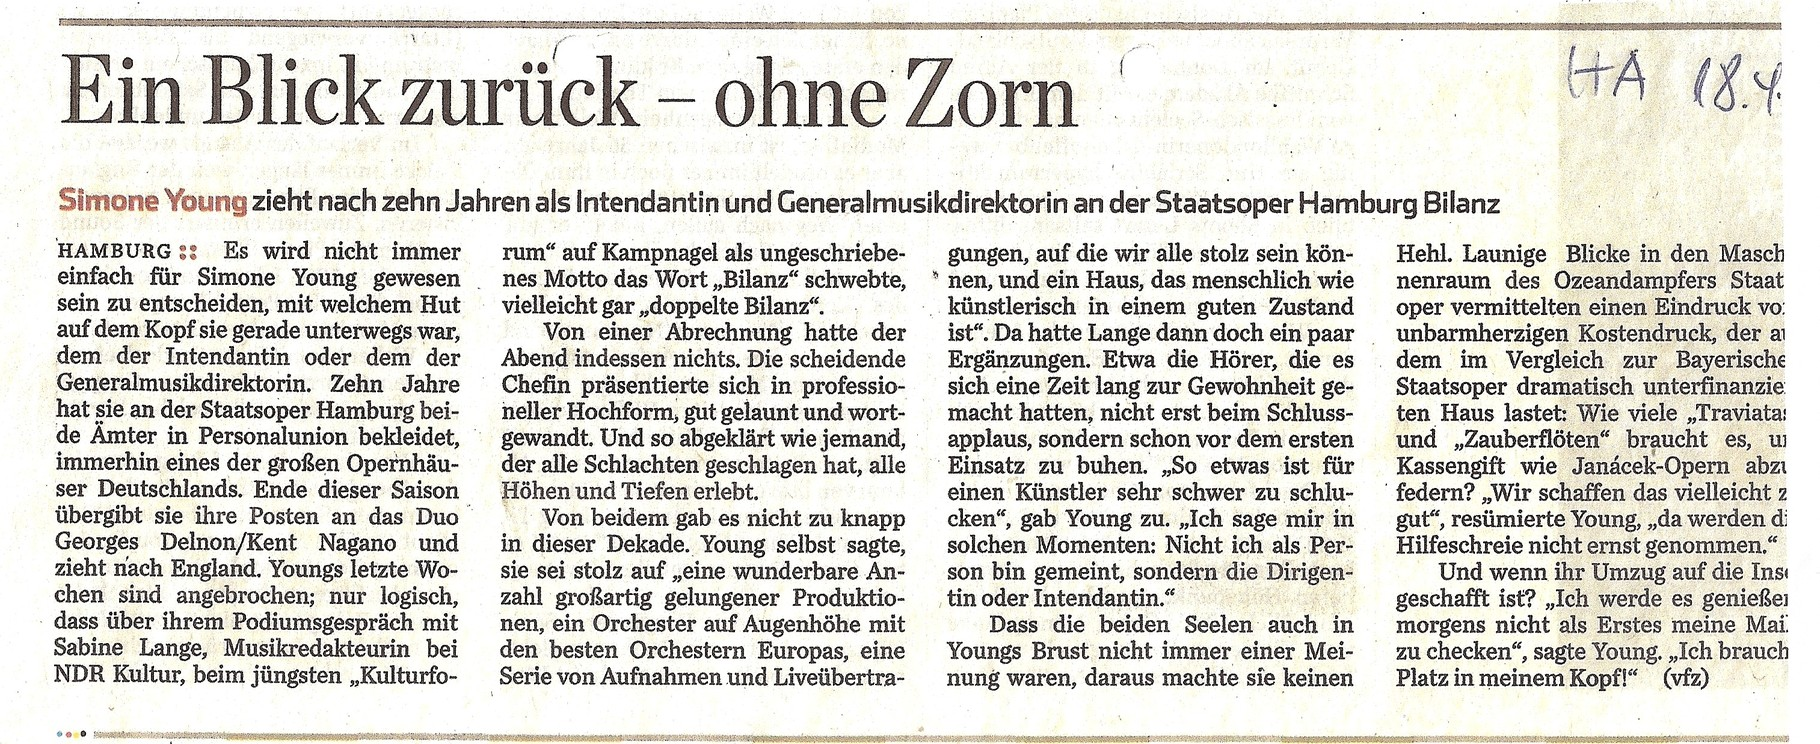 Hamburger Abendblatt, 18. April 2015